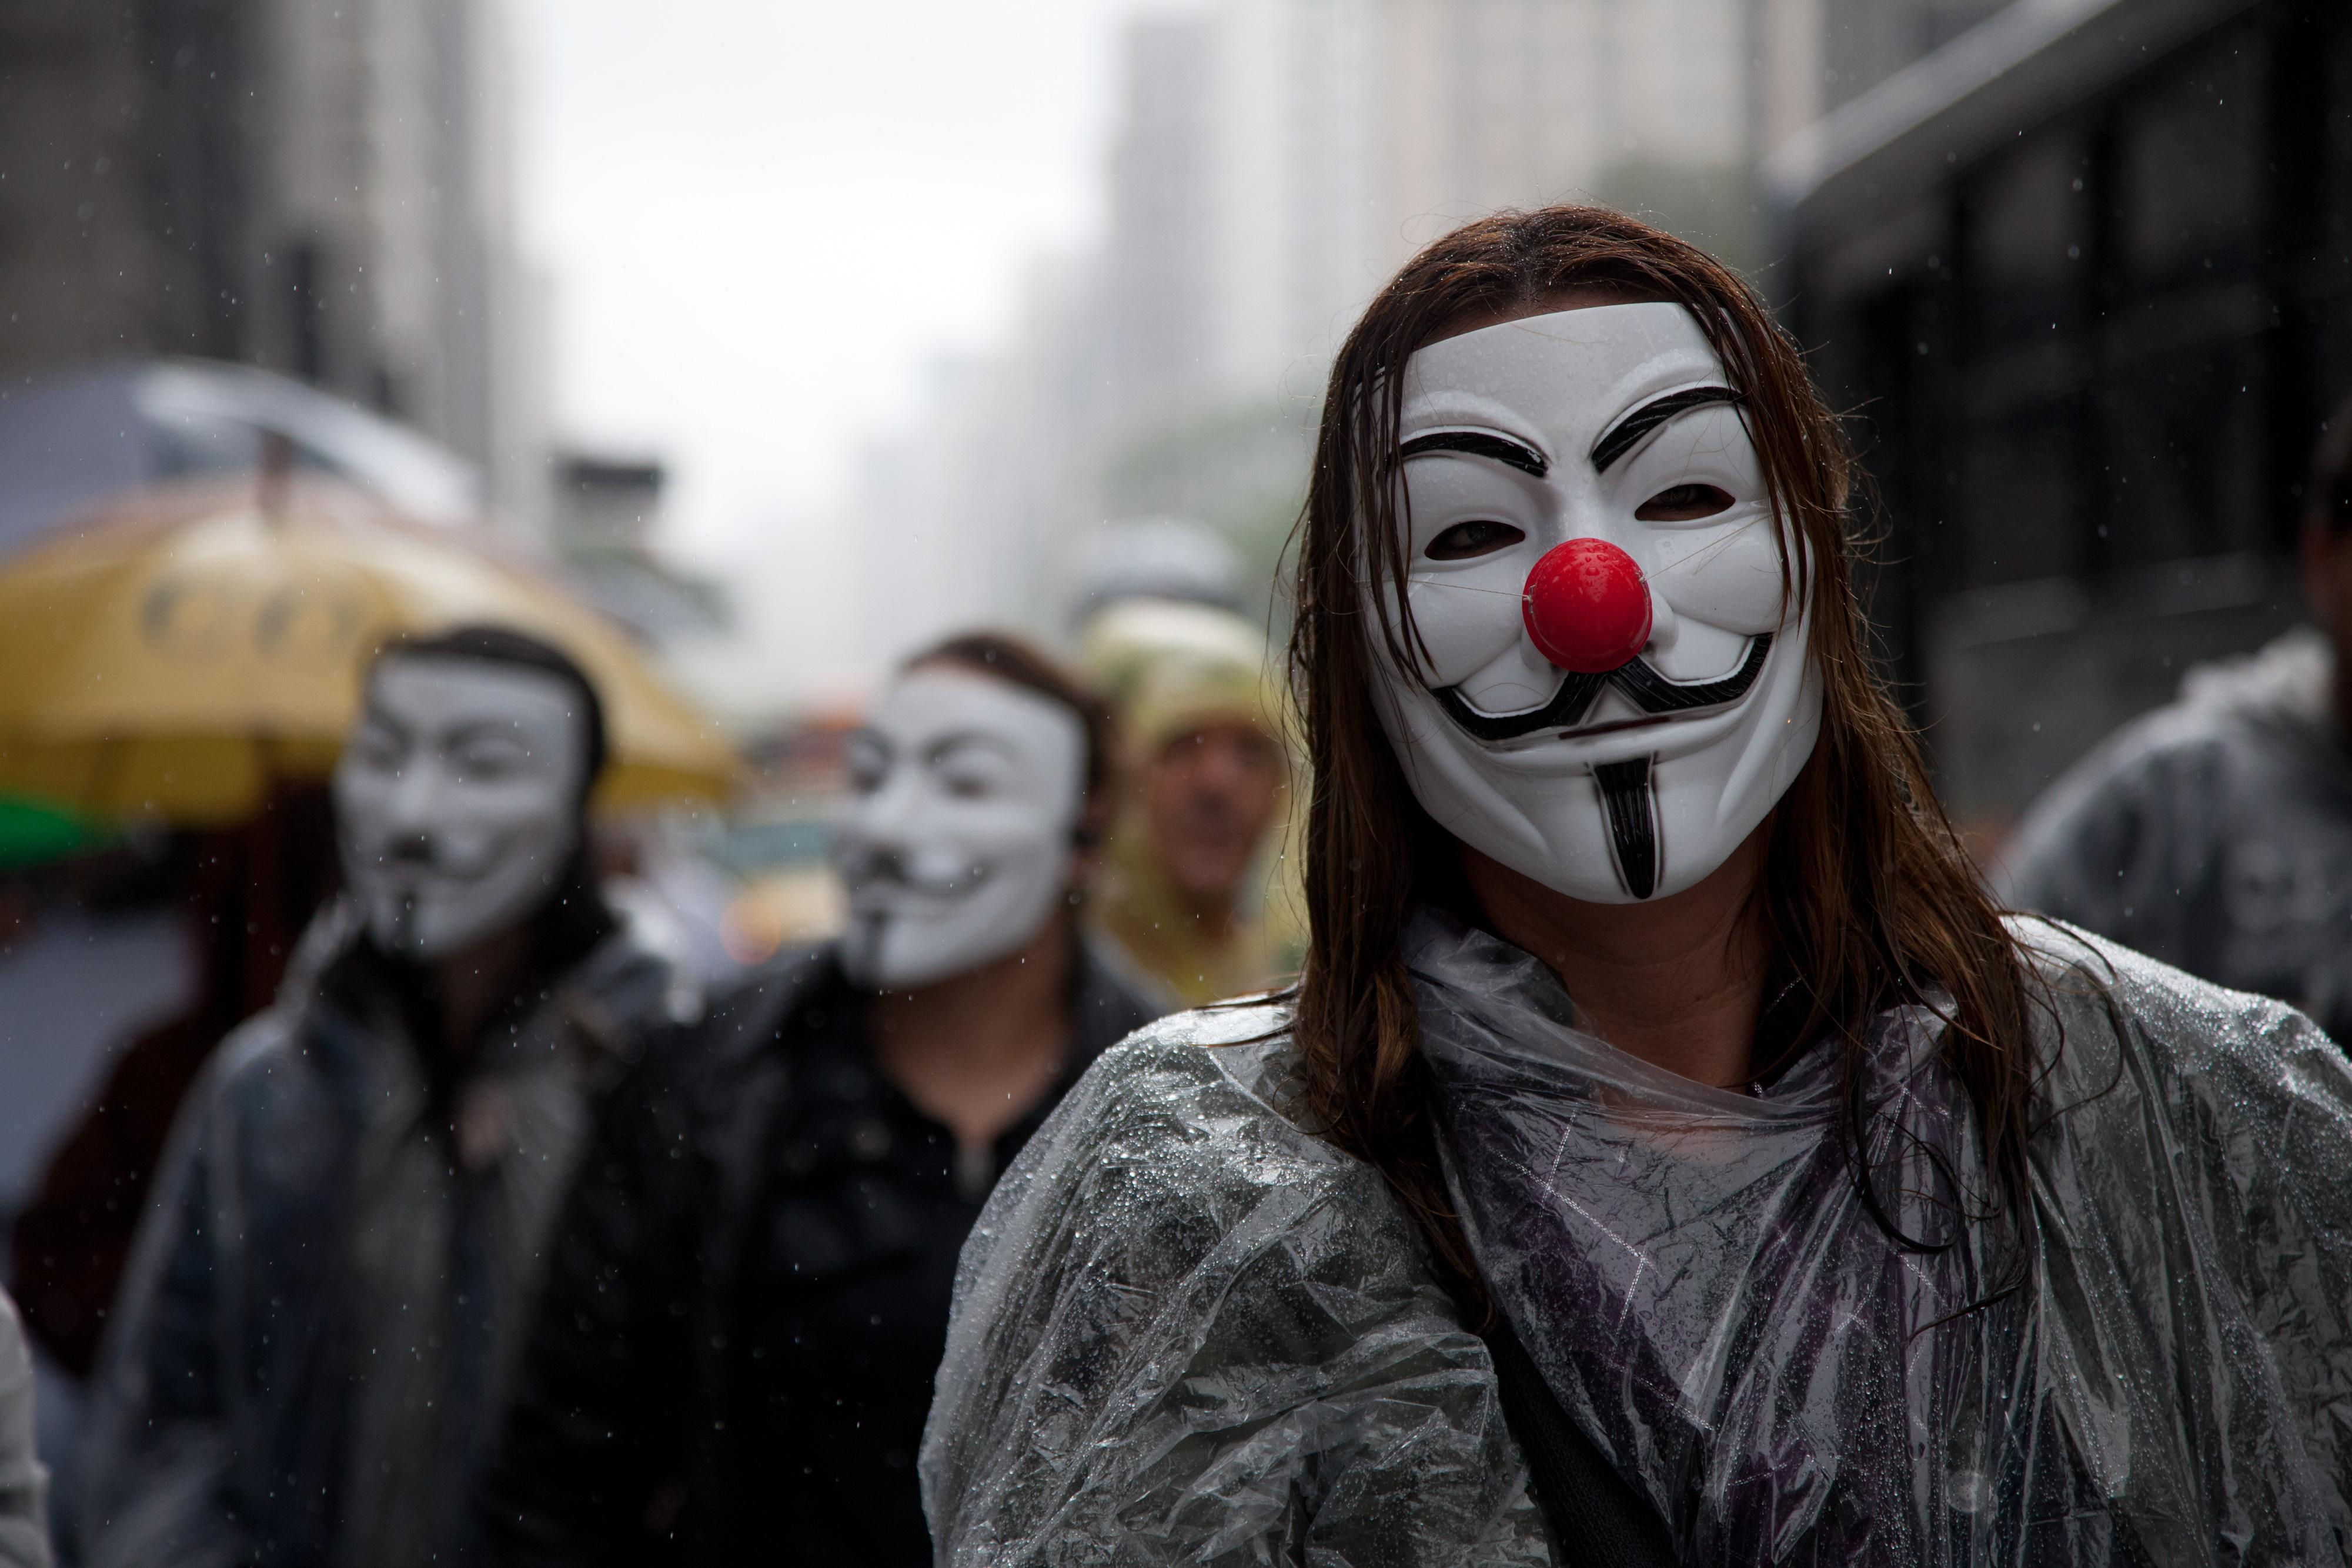 The Guy Fawkes Mask In V For Vendetta A Metaphor For The Closet